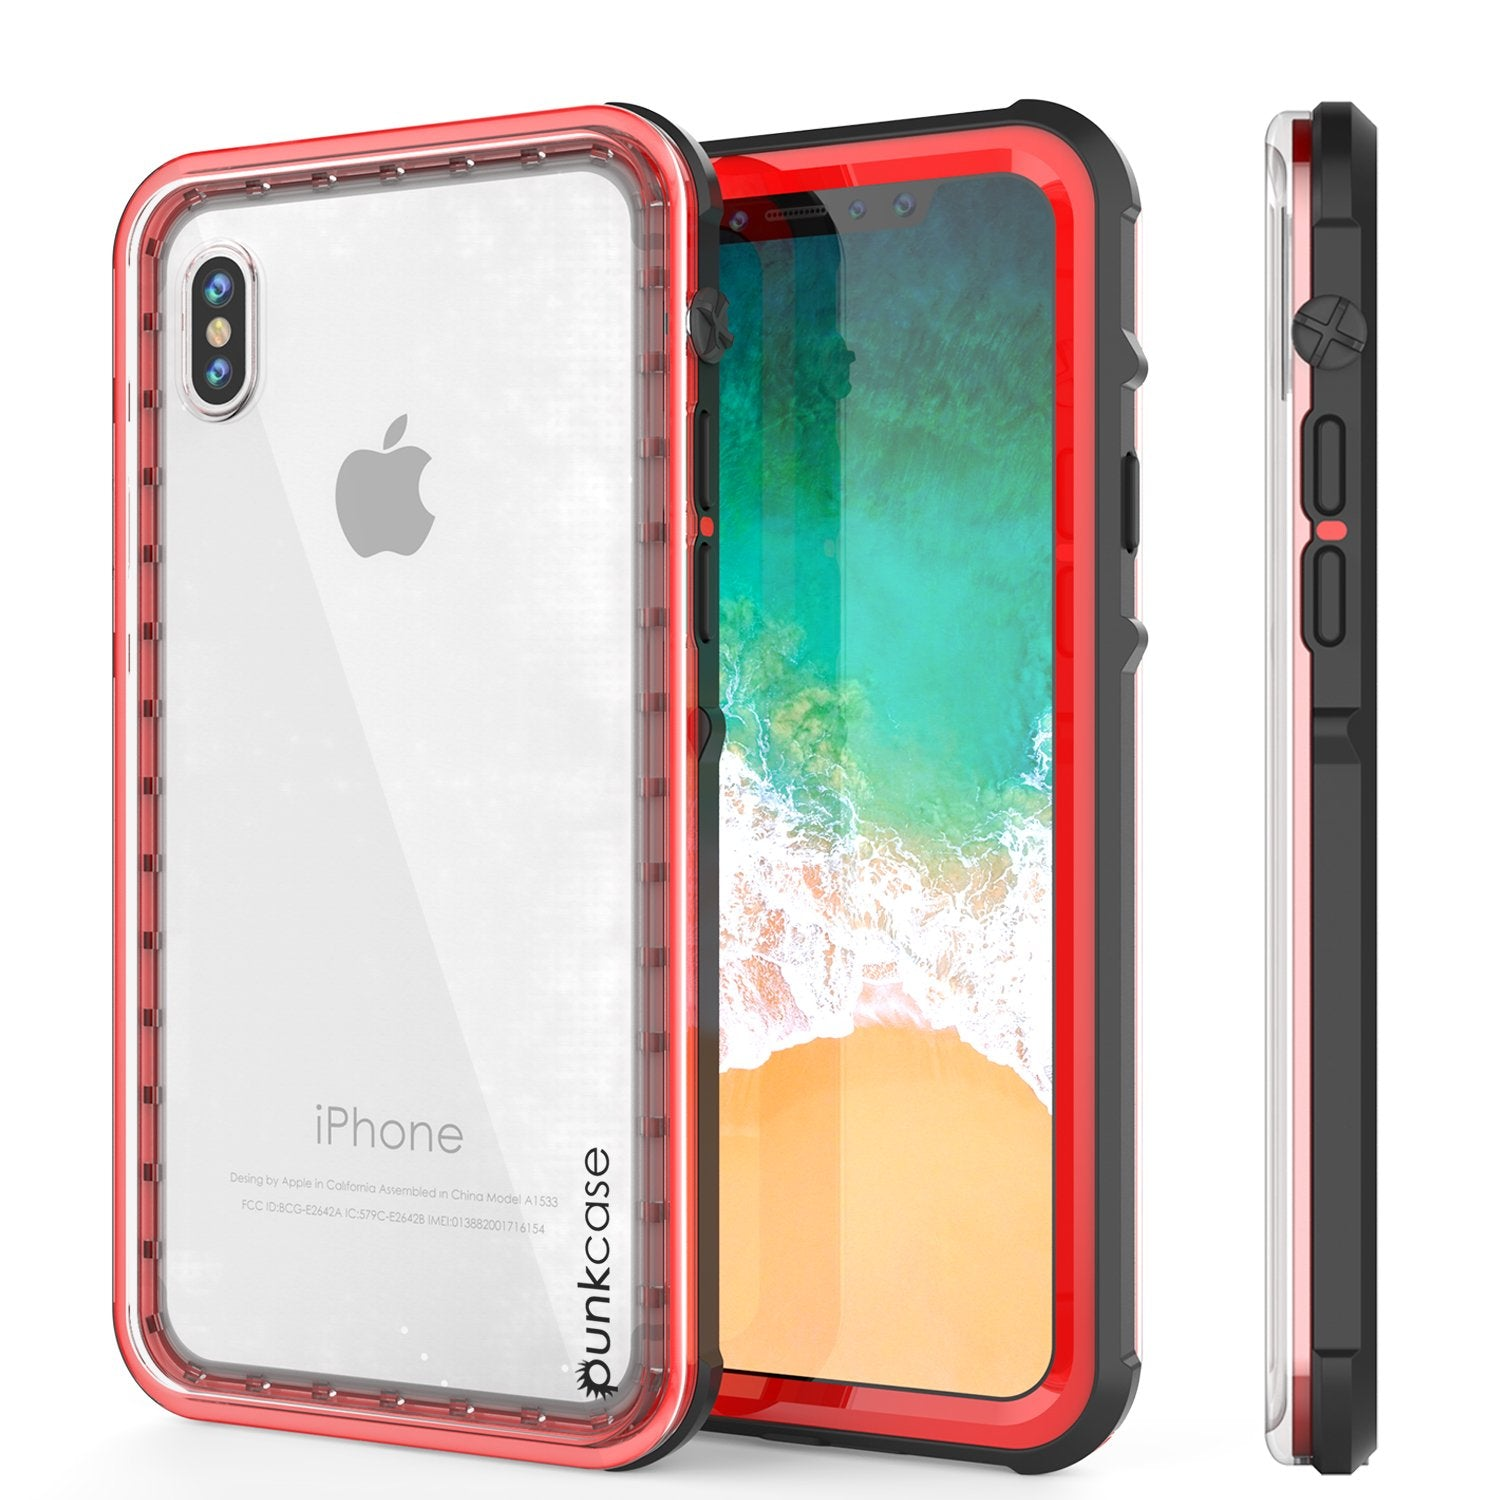 iPhone X Punkcase CRYSTAL SERIES Cover W/Screen Protector, [Red]